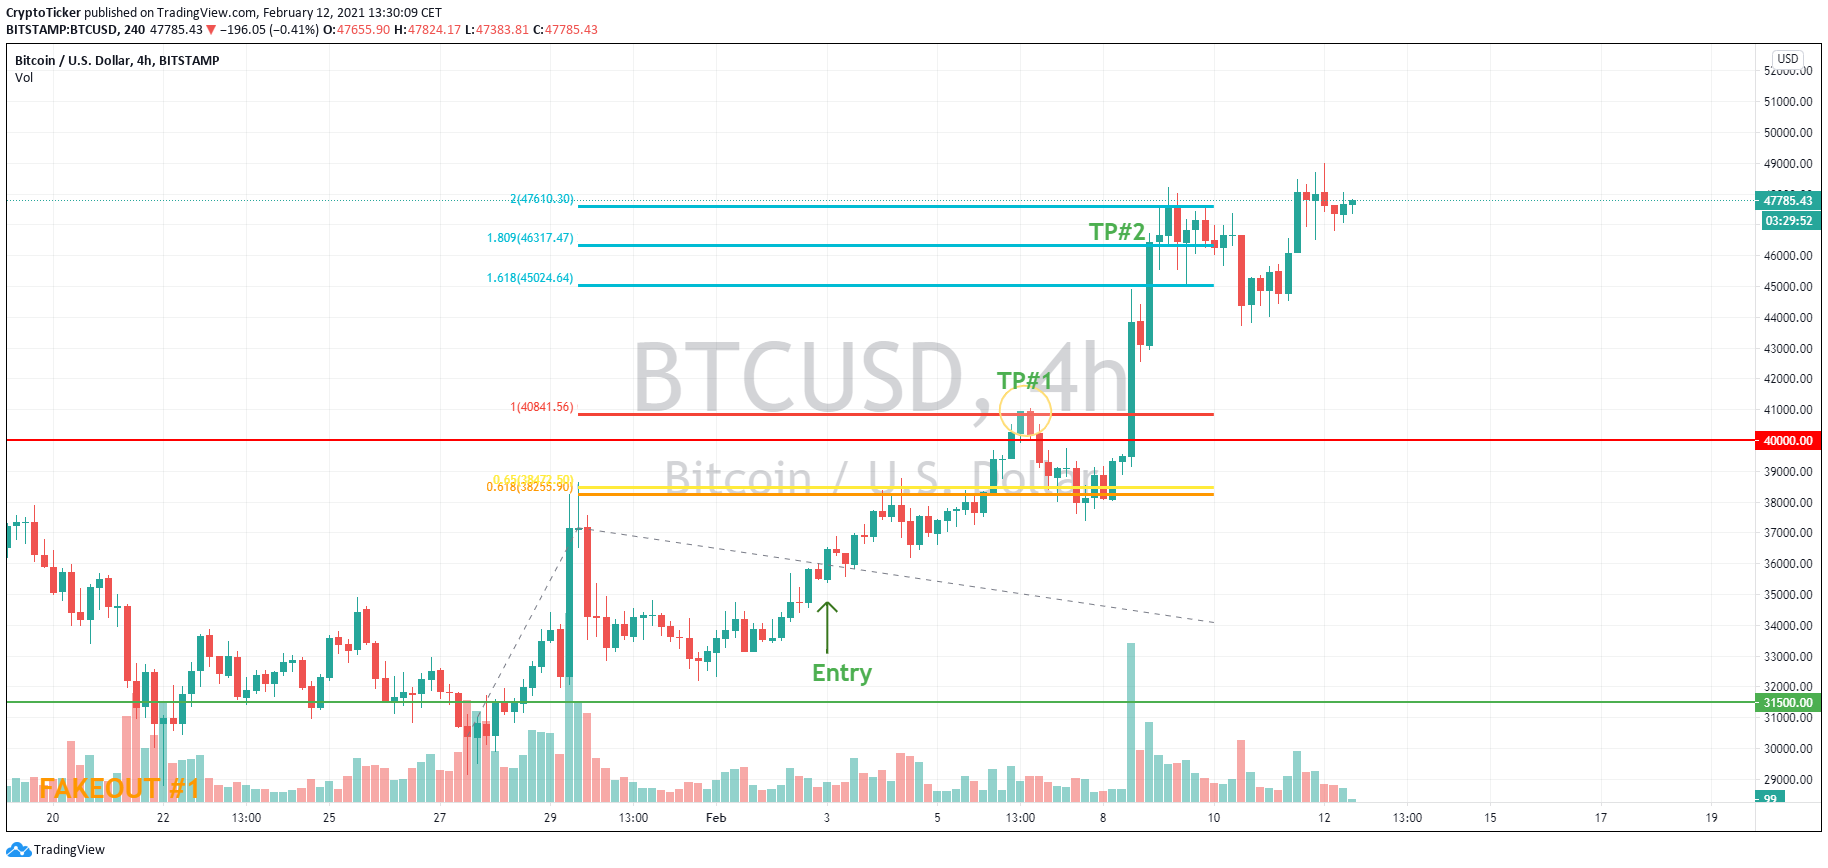 BTC/USD 4-hour chart showing BTC's price prediction happen exactly as plotted